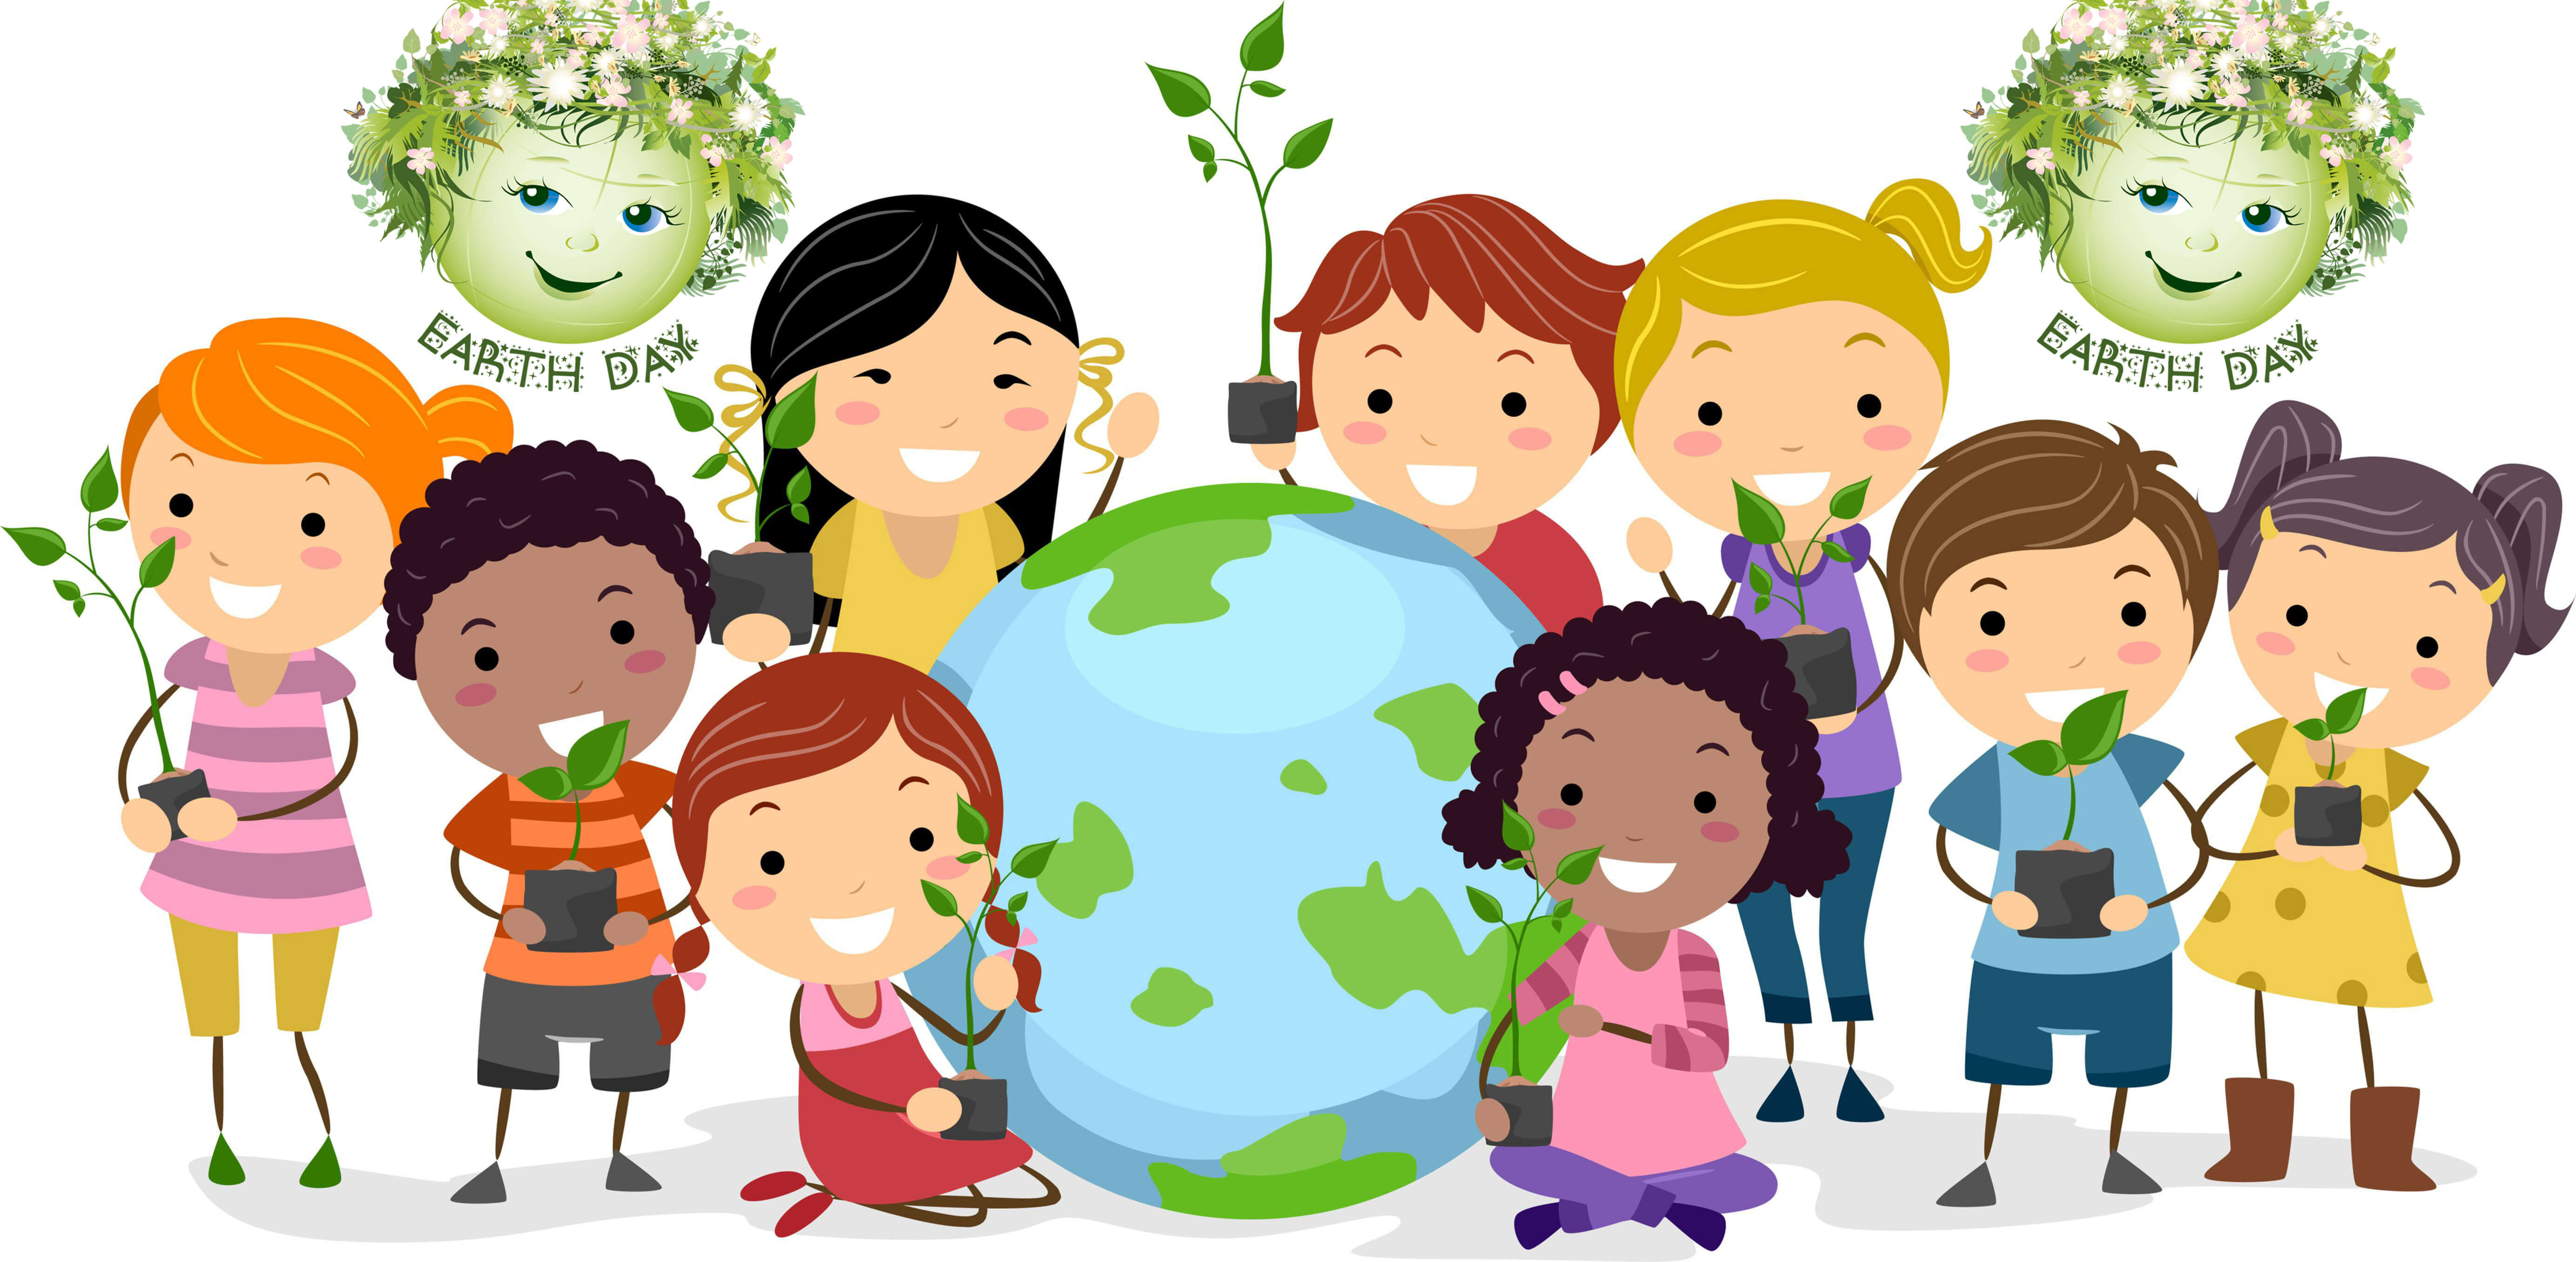 happy earth day cover photo kids with plants